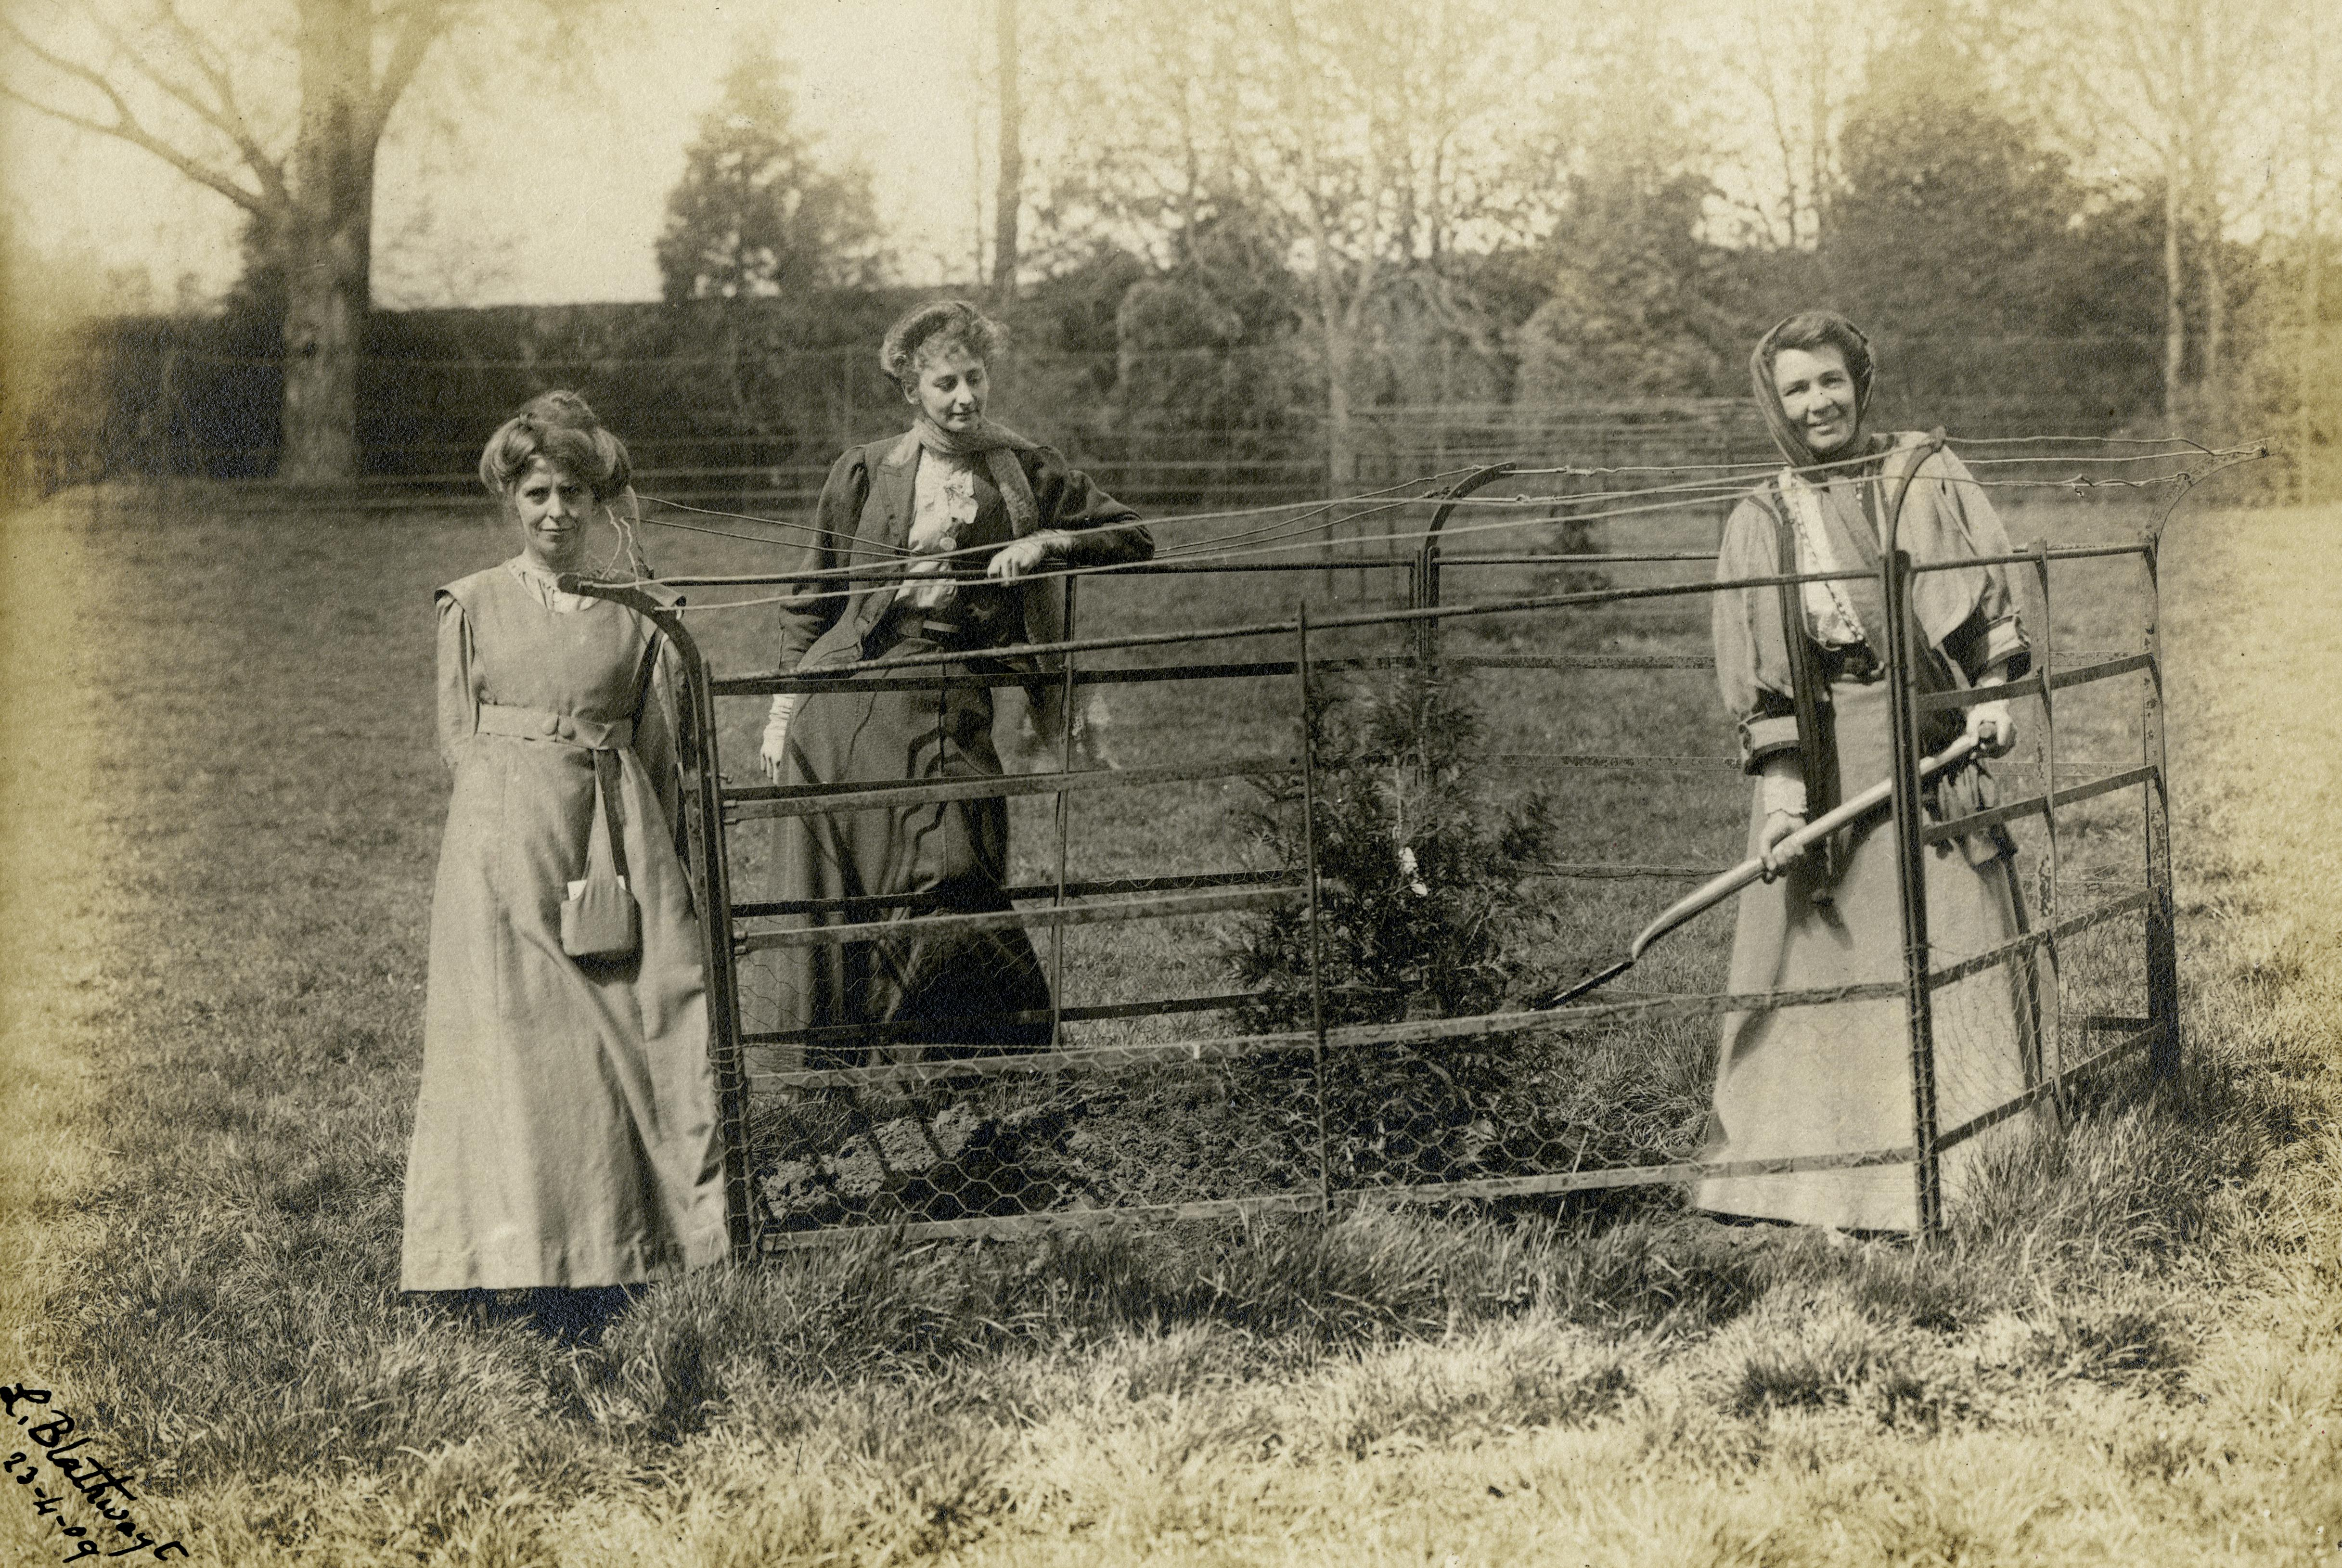 Emmeline Pethick Lawrence planting her tree with A. Kenney and Lady Lytton